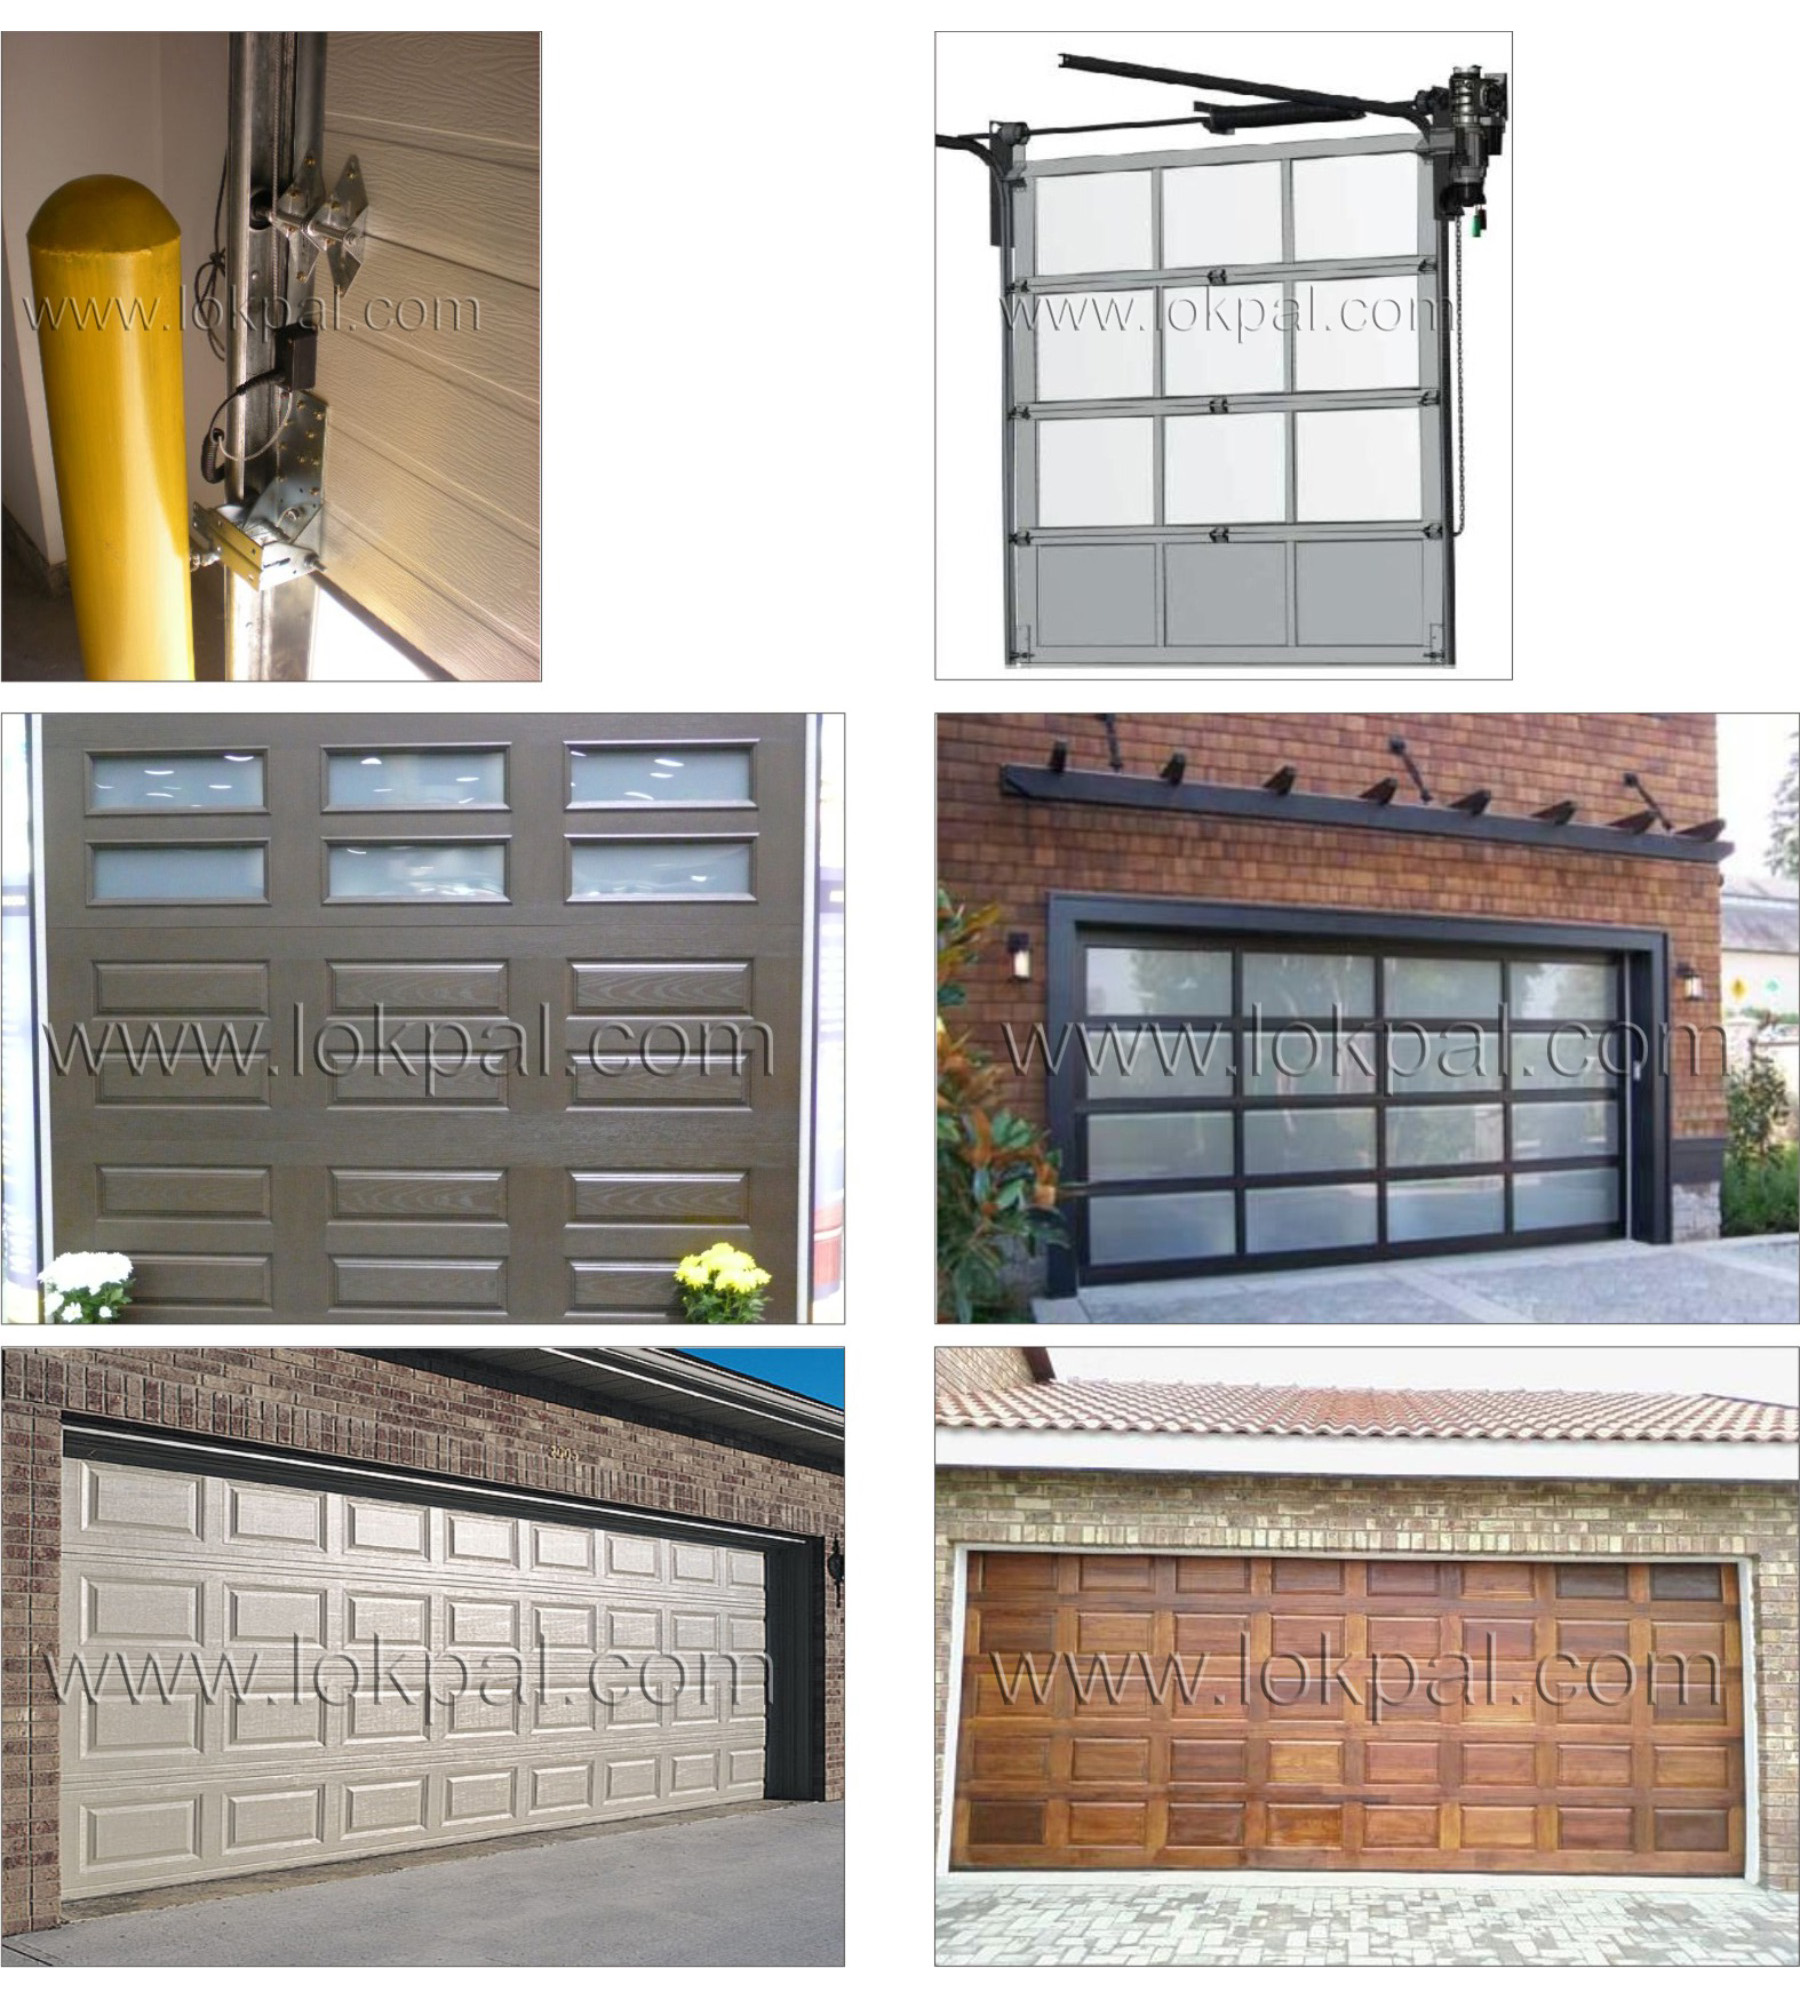 Automatic garage door tips on choosing the right style for Garage door opens on its own